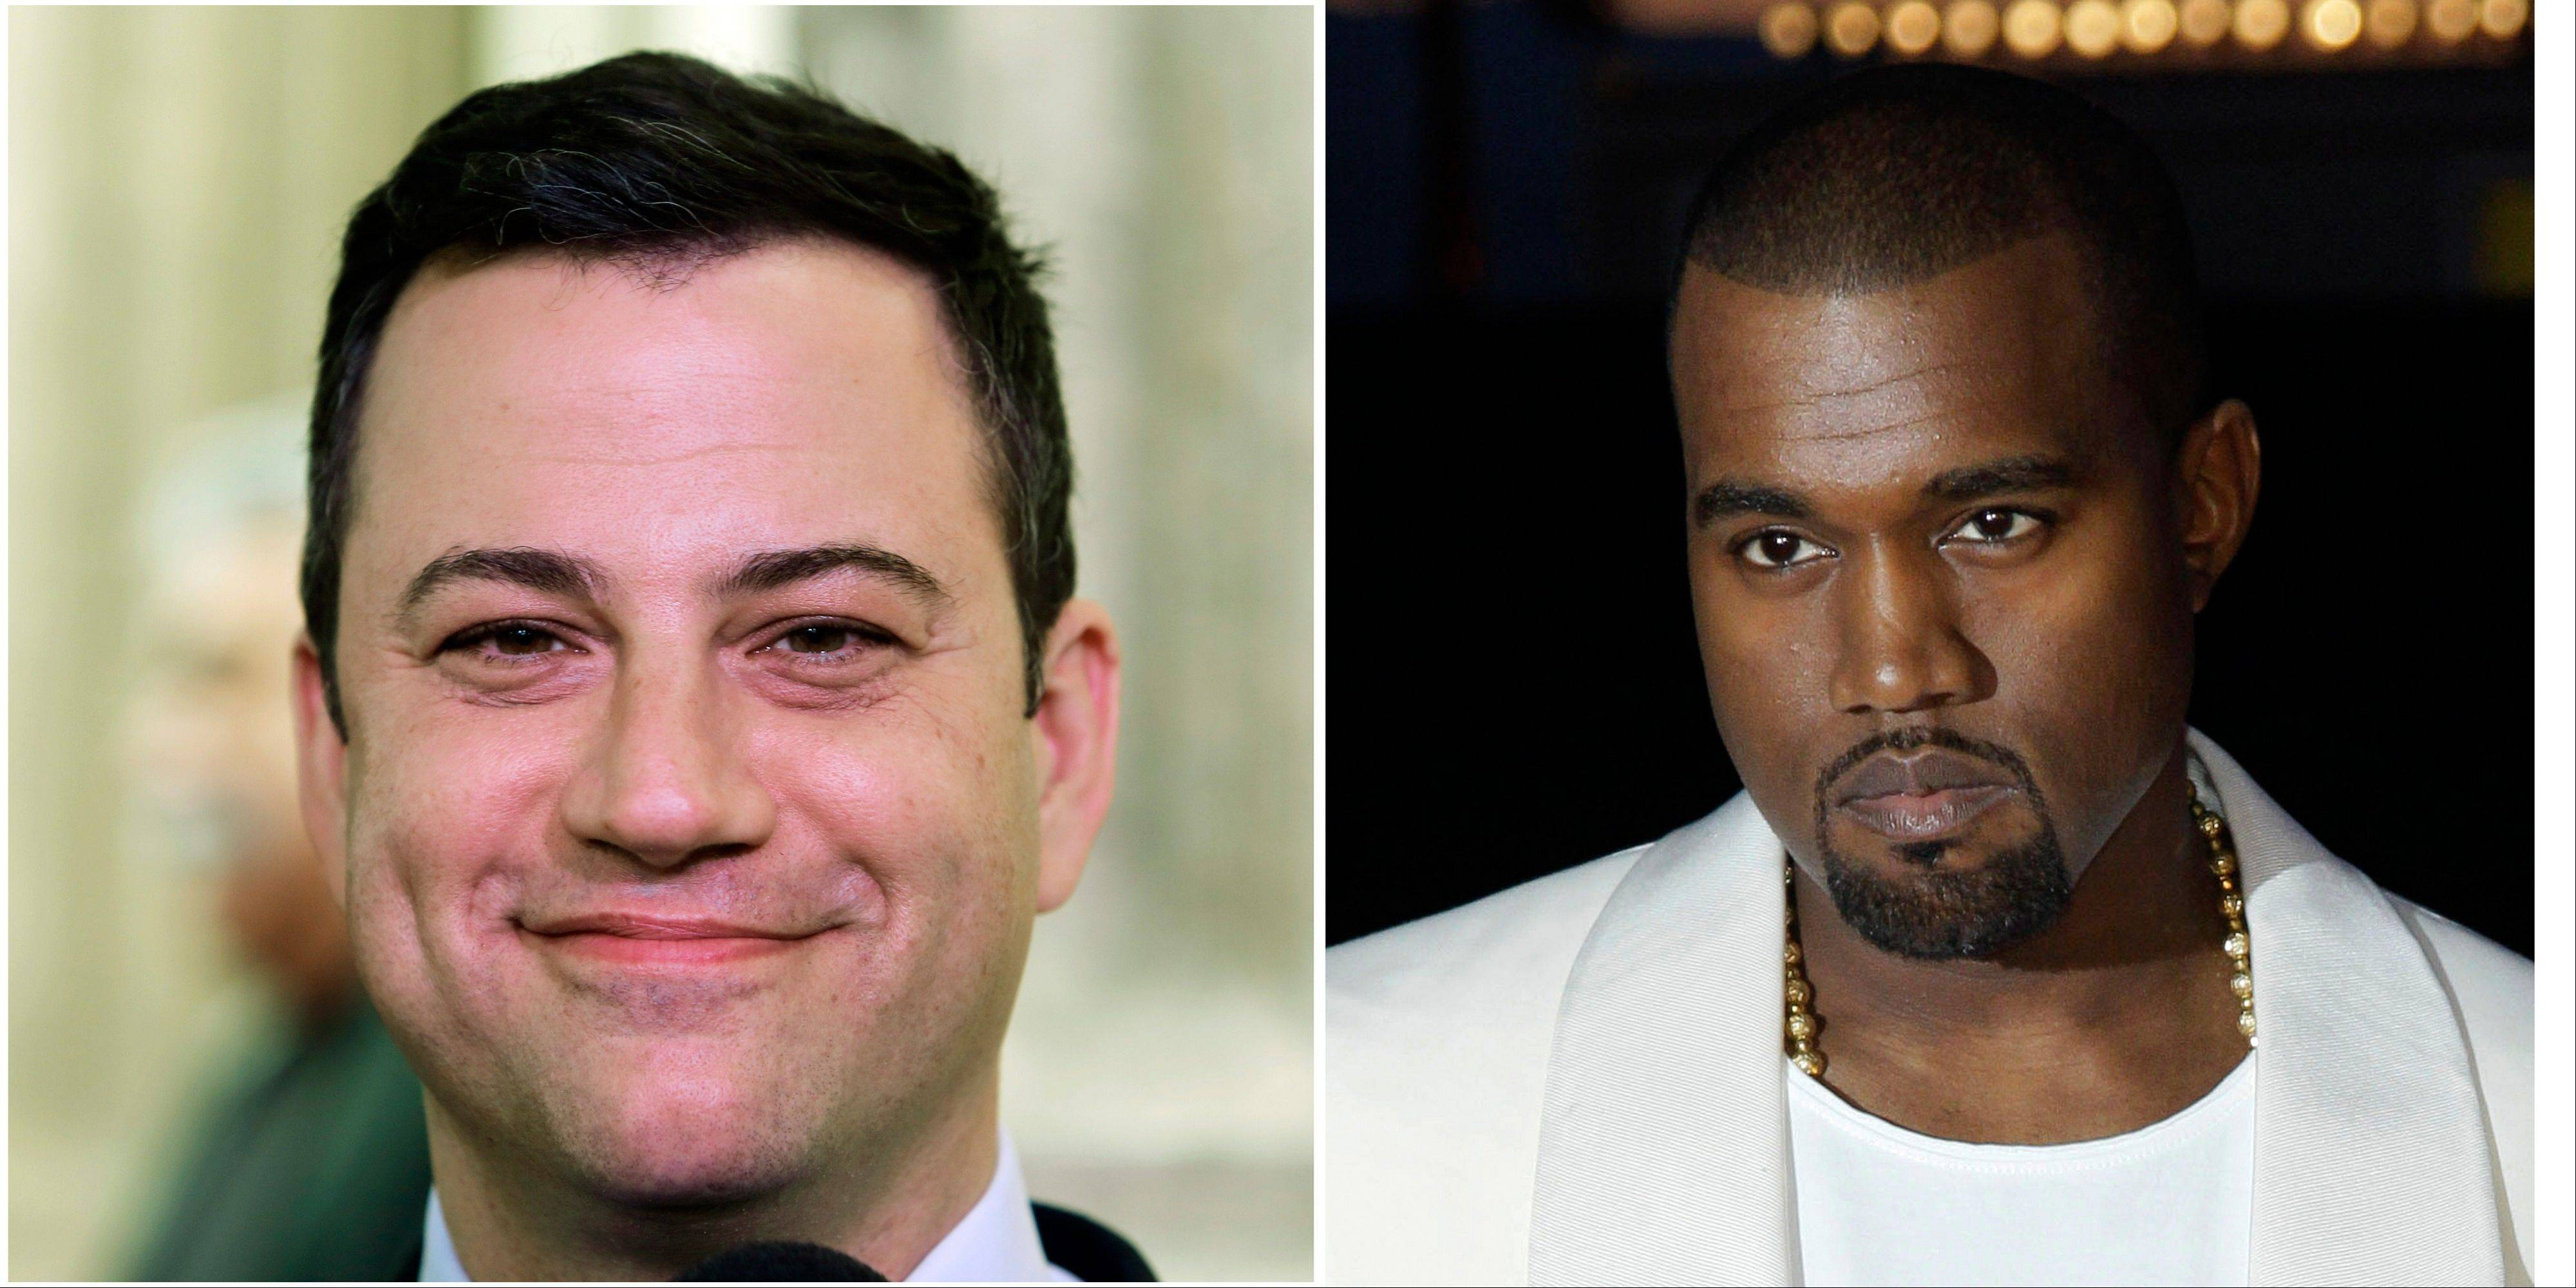 Jimmy Kimmel and Kanye West either are engaged in a bitter feud or a heck of a parody. Kimmel�s monologue Thursday night Sept. 26, 2013 was devoted to discussing what he called a �very angry phone call� he received from West about an hour and a half before taping ABC�s �Jimmy Kimmel Live.�